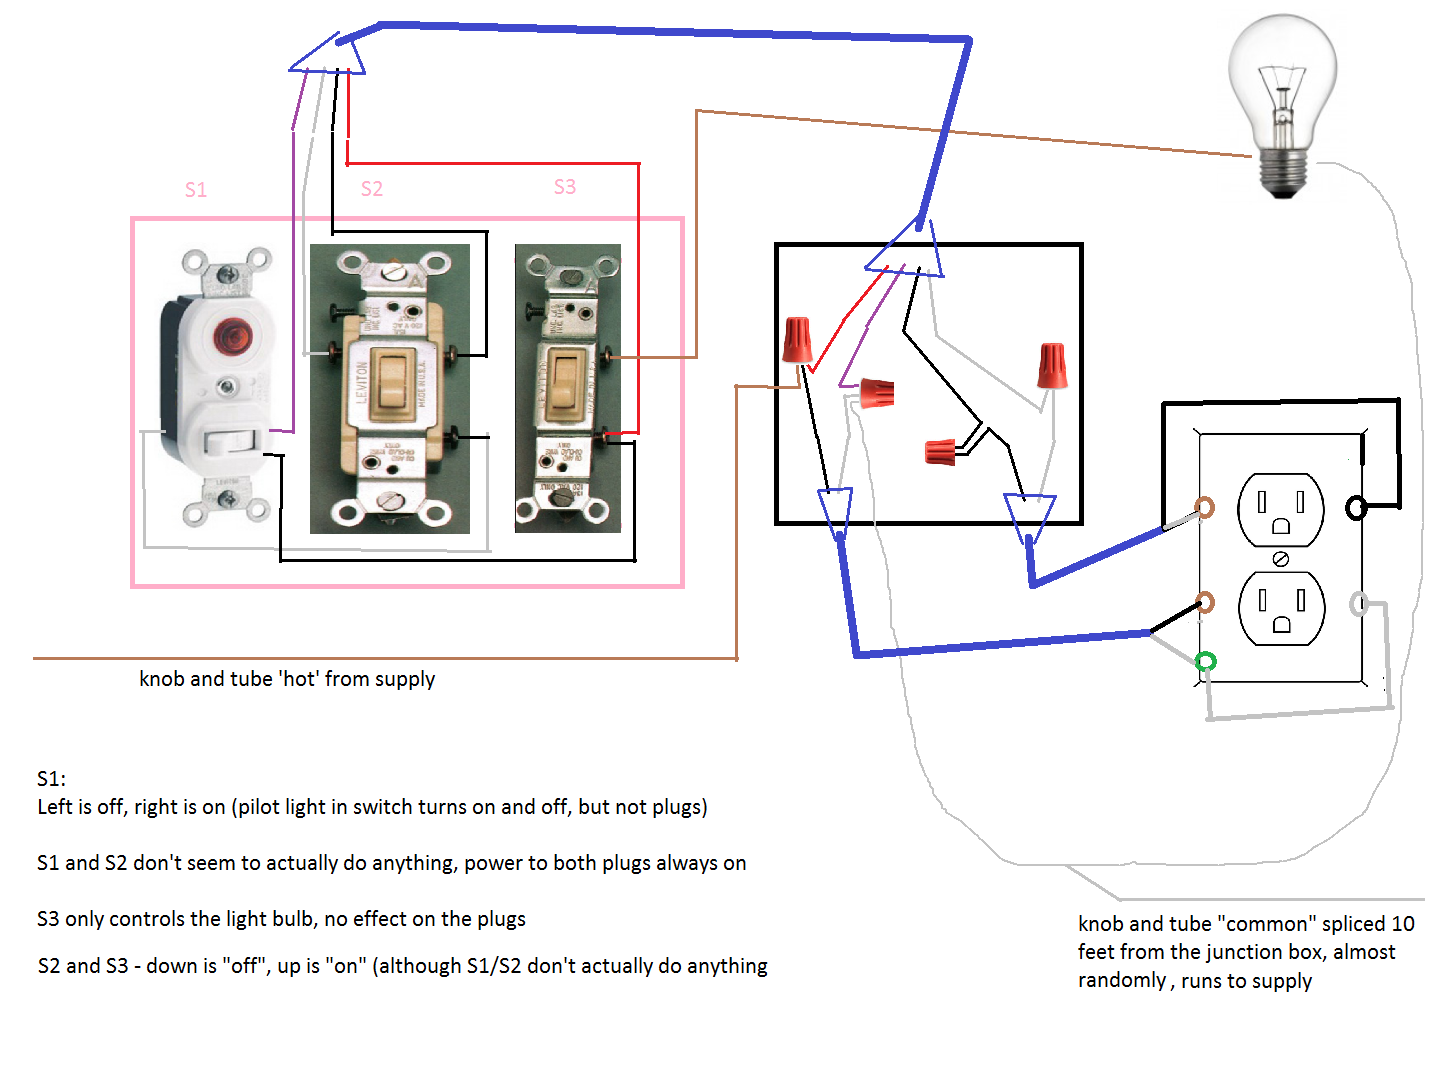 Help Me Understand This Wiring Diagram And Maybe Why The Switches A Switch Off Plug Updated